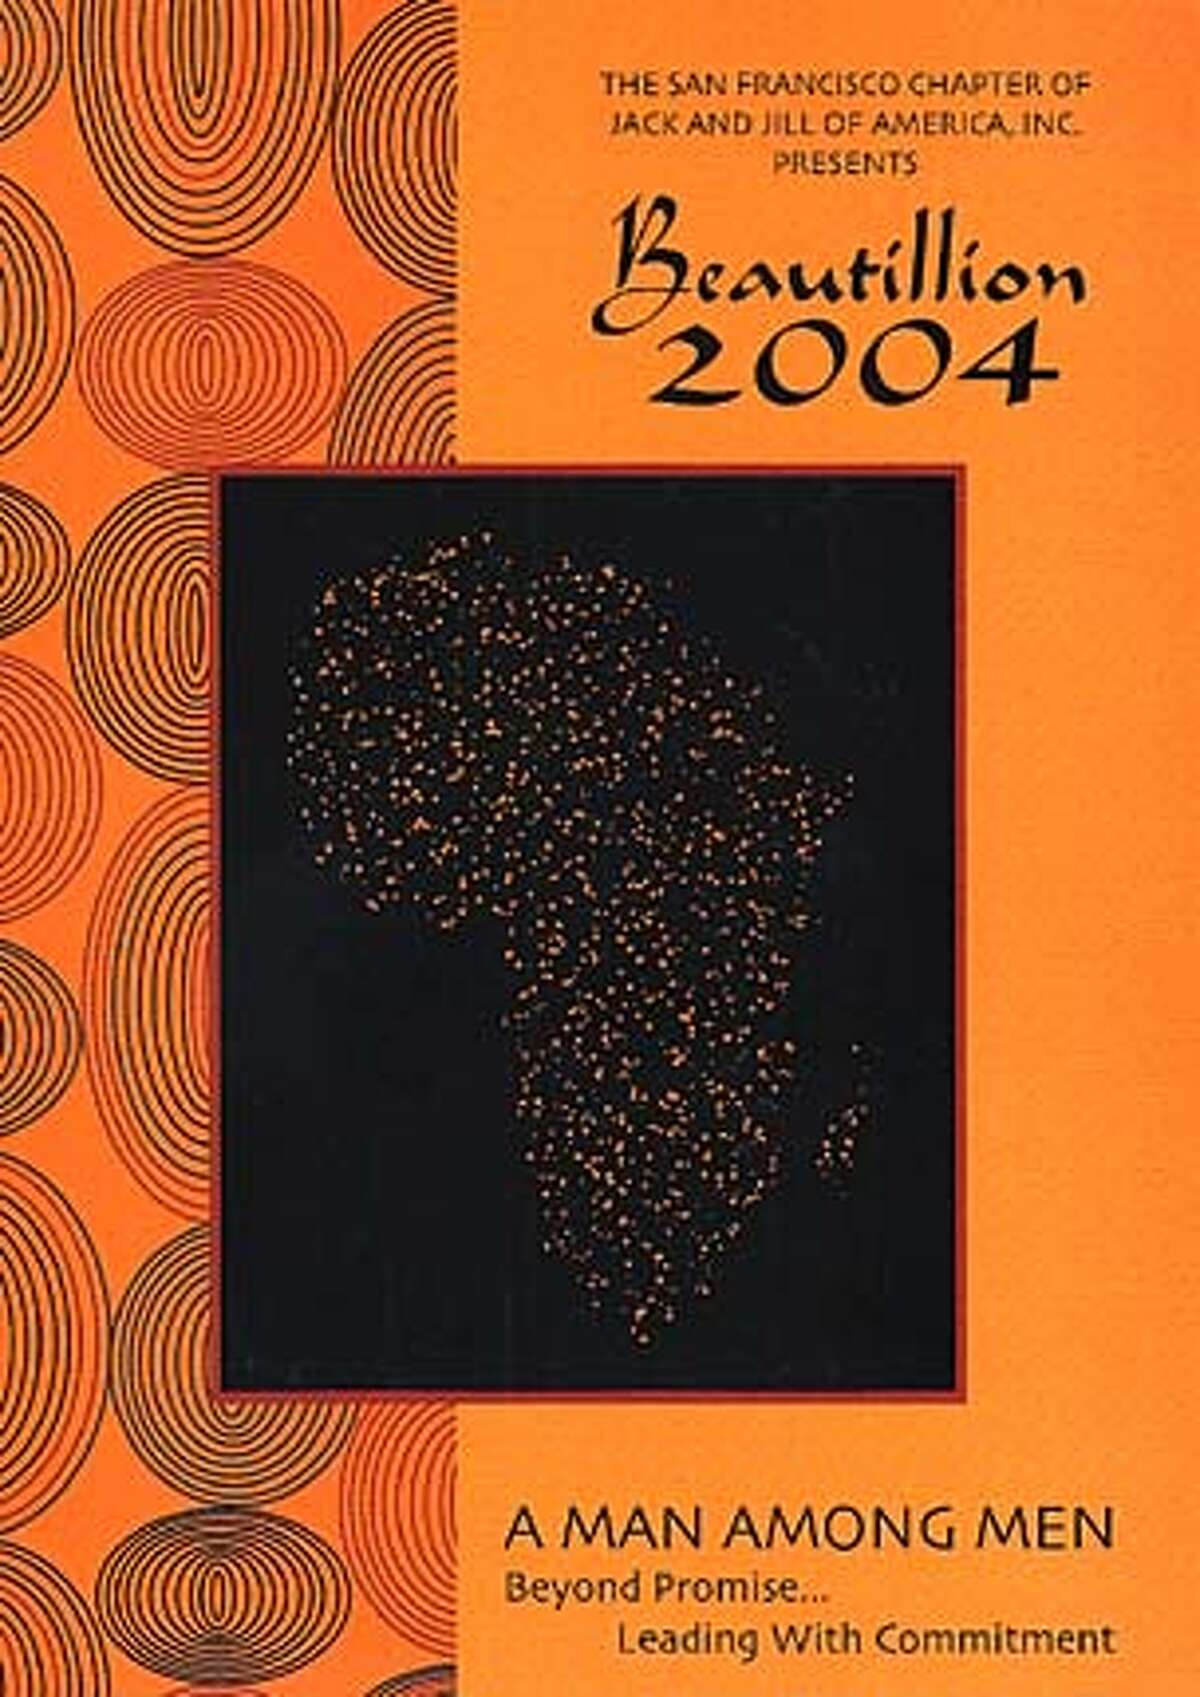 Beautillion 2004 celebrates the scholastic and community acheivements of local African American students on April 3 in SF